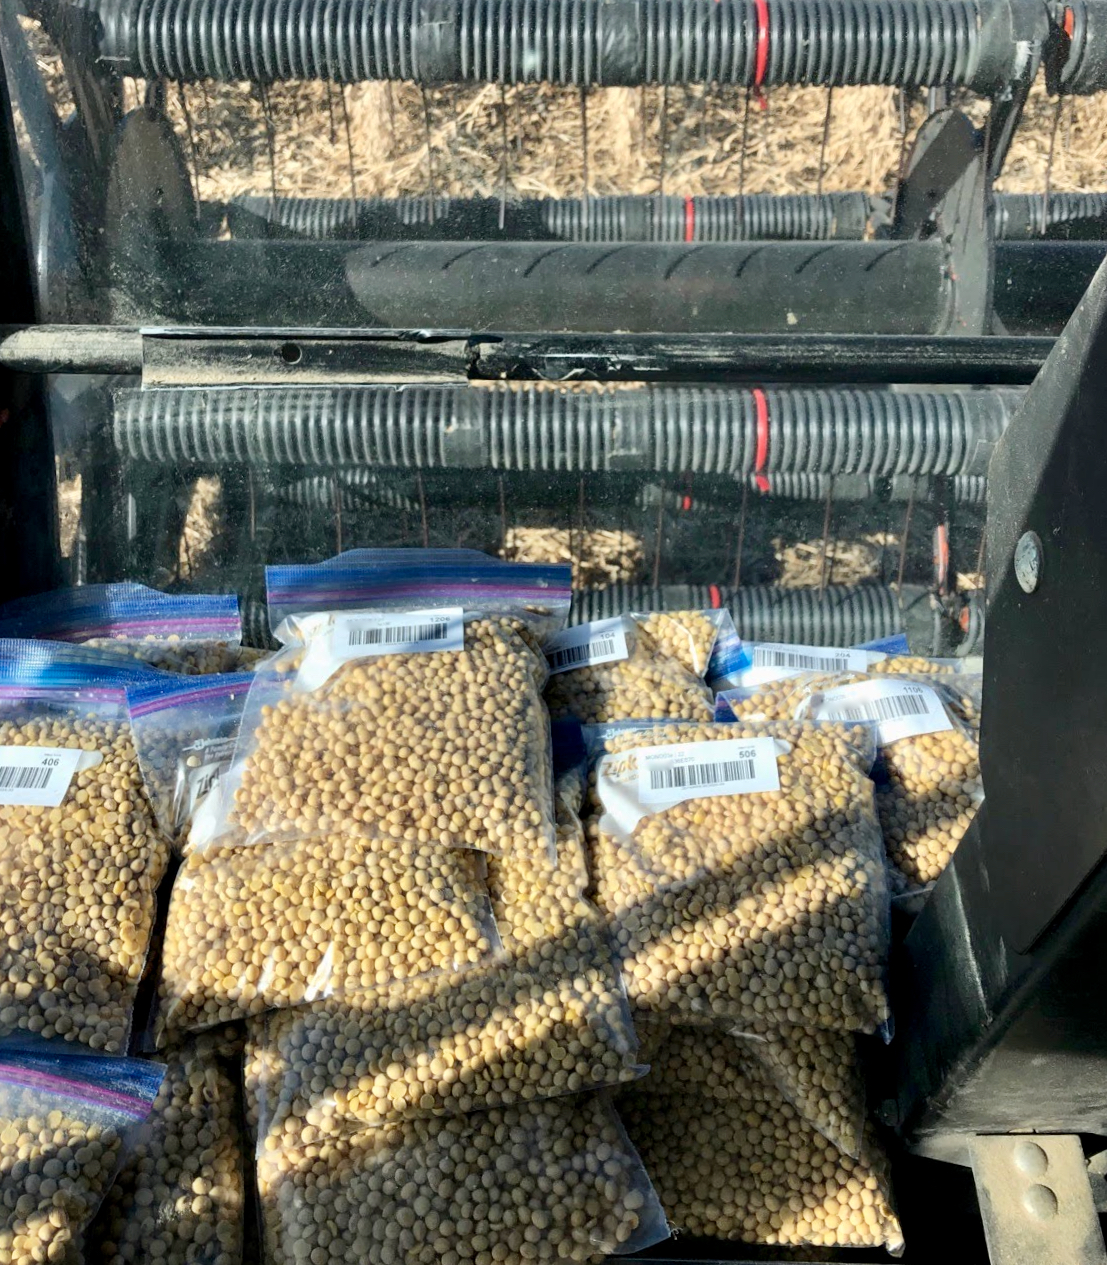 Soybean samples collected in MO 2020